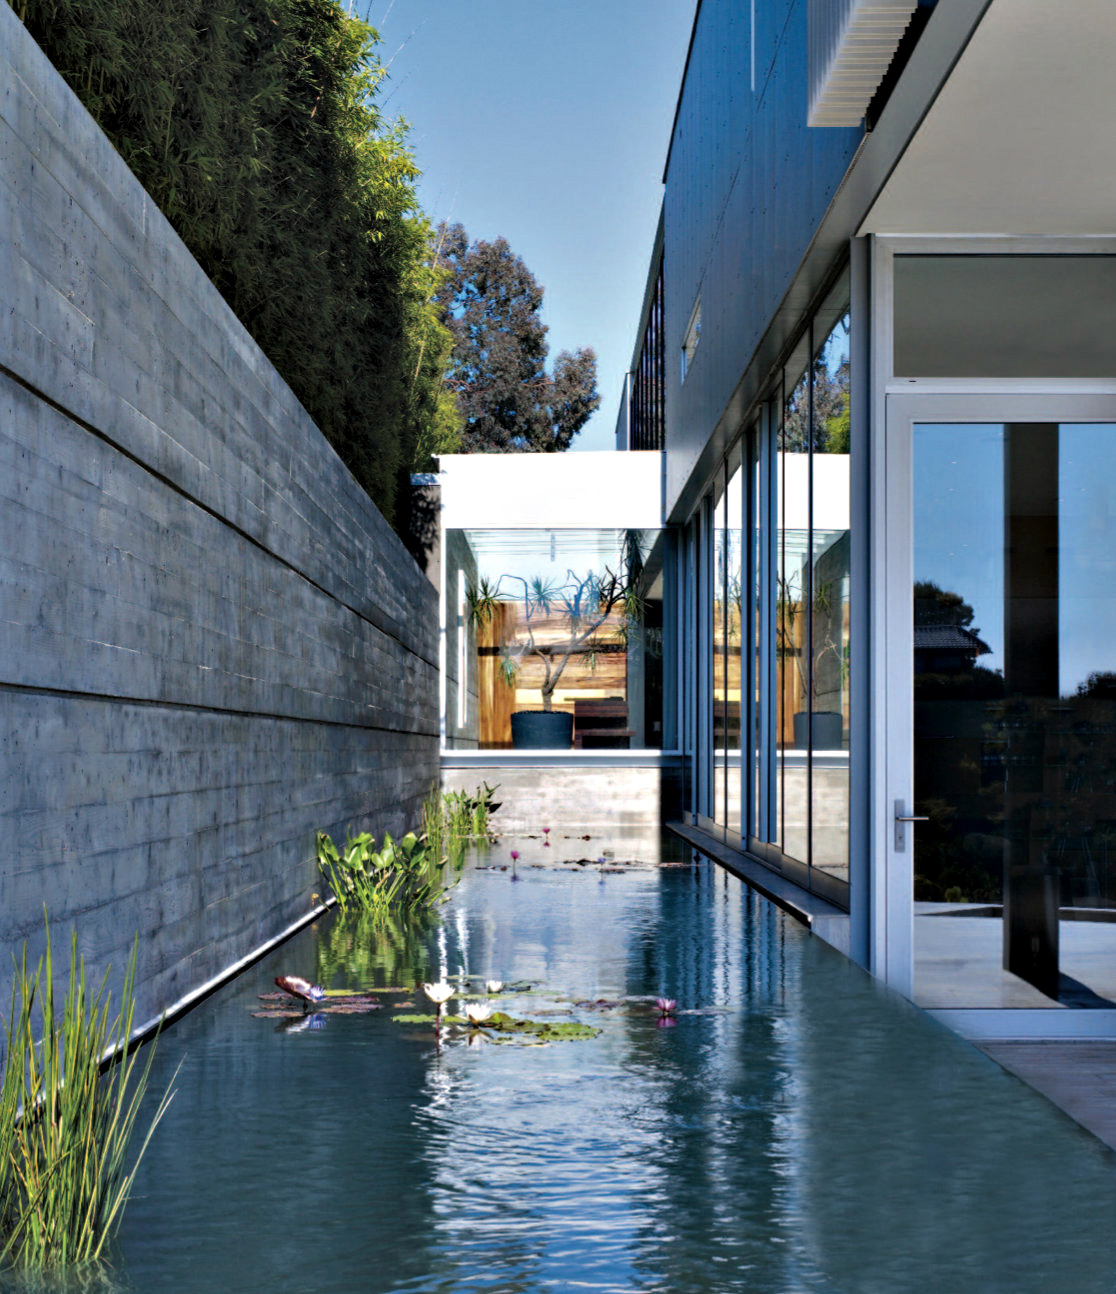 Oberfeld Residence – 9318 Nightingale Drive, Los Angeles, CA, USA